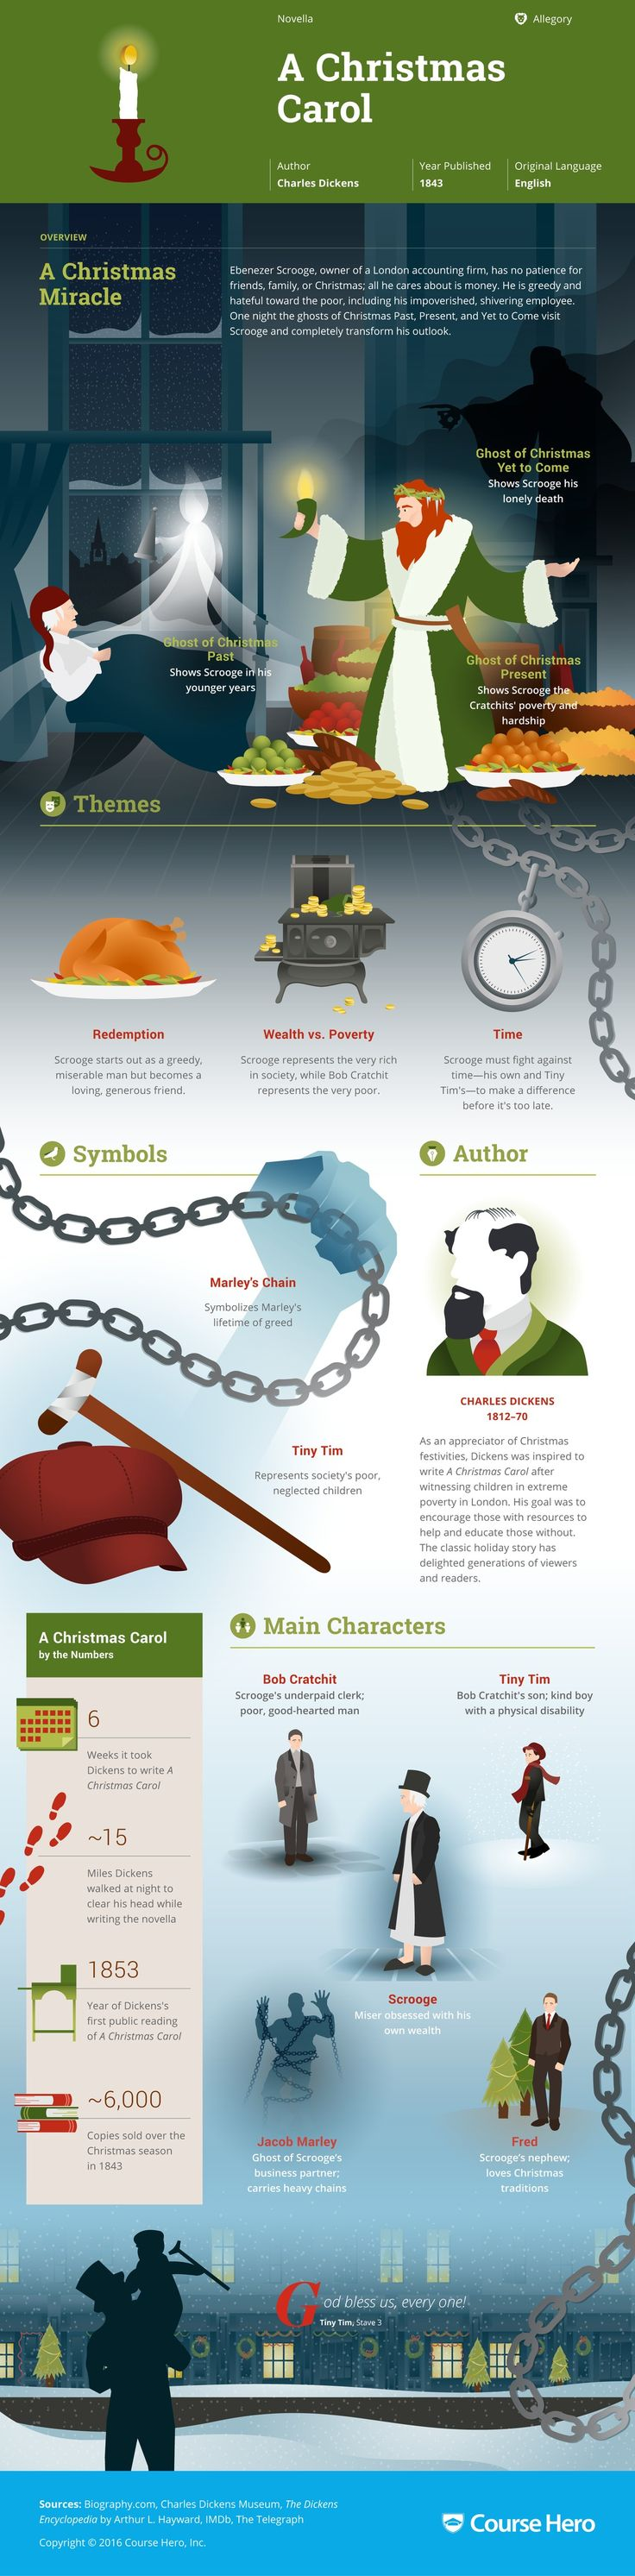 Pinterest - mutinelolita - A Christmas Carol infographic | Course Hero